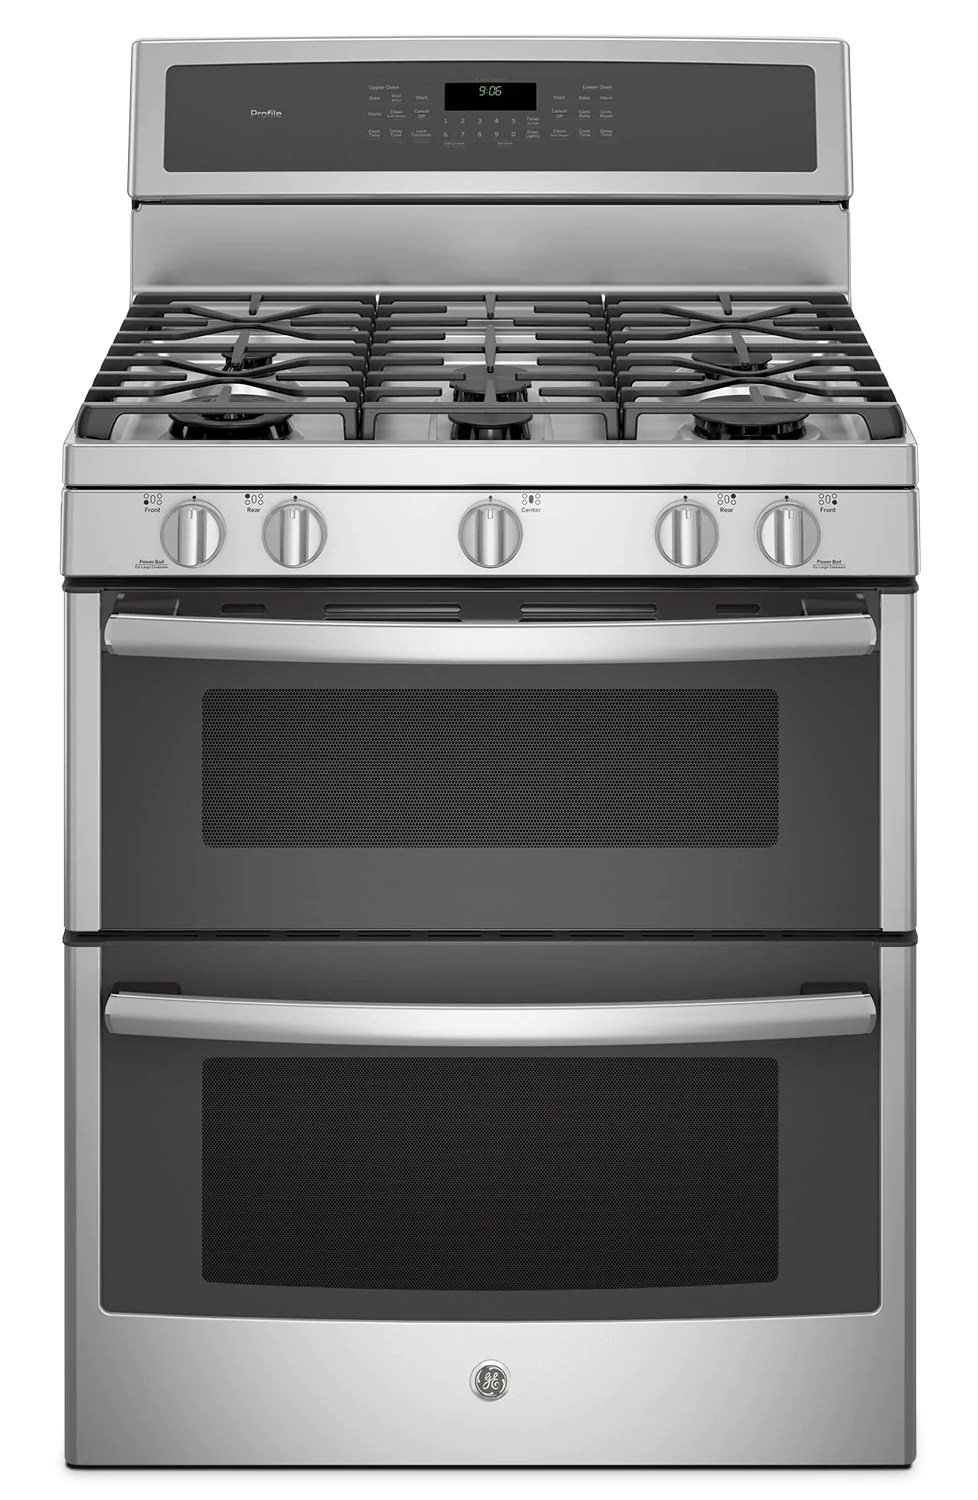 Electromenager Occasion Var Ge 6 8 Cu Ft Freestanding Double Oven Gas Range Pcgb980zejss